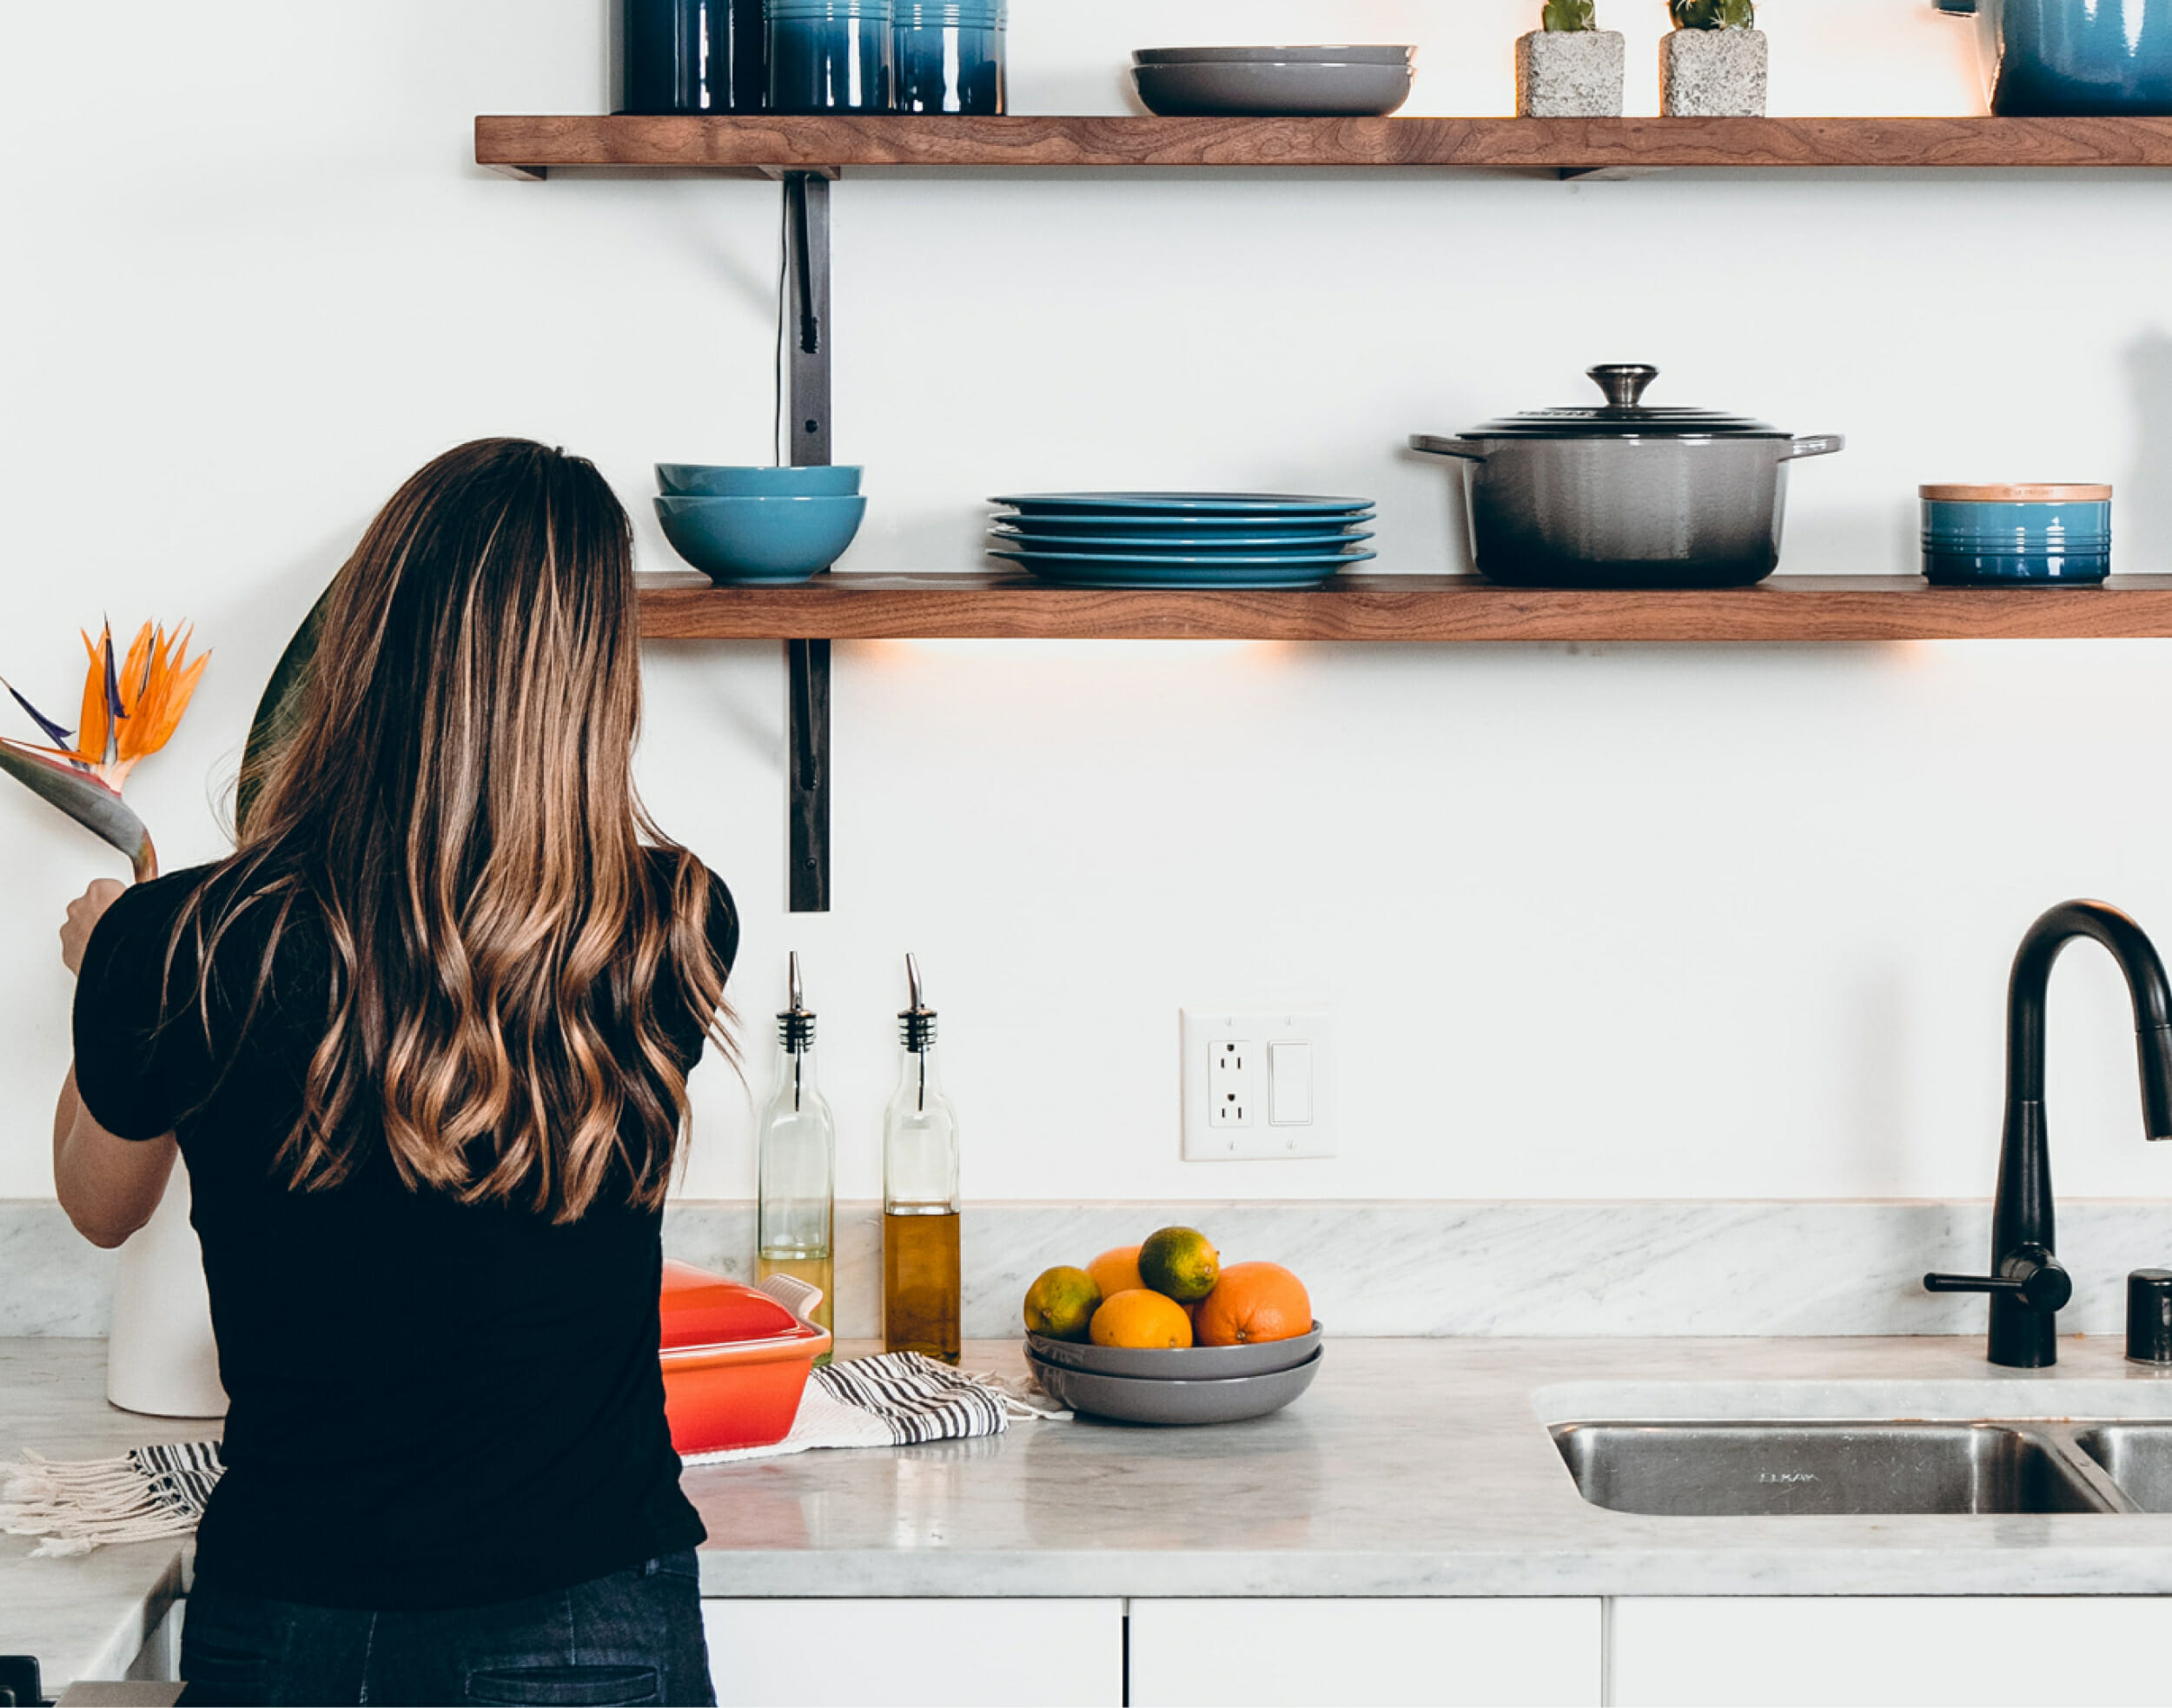 Kitchen with modern shelving